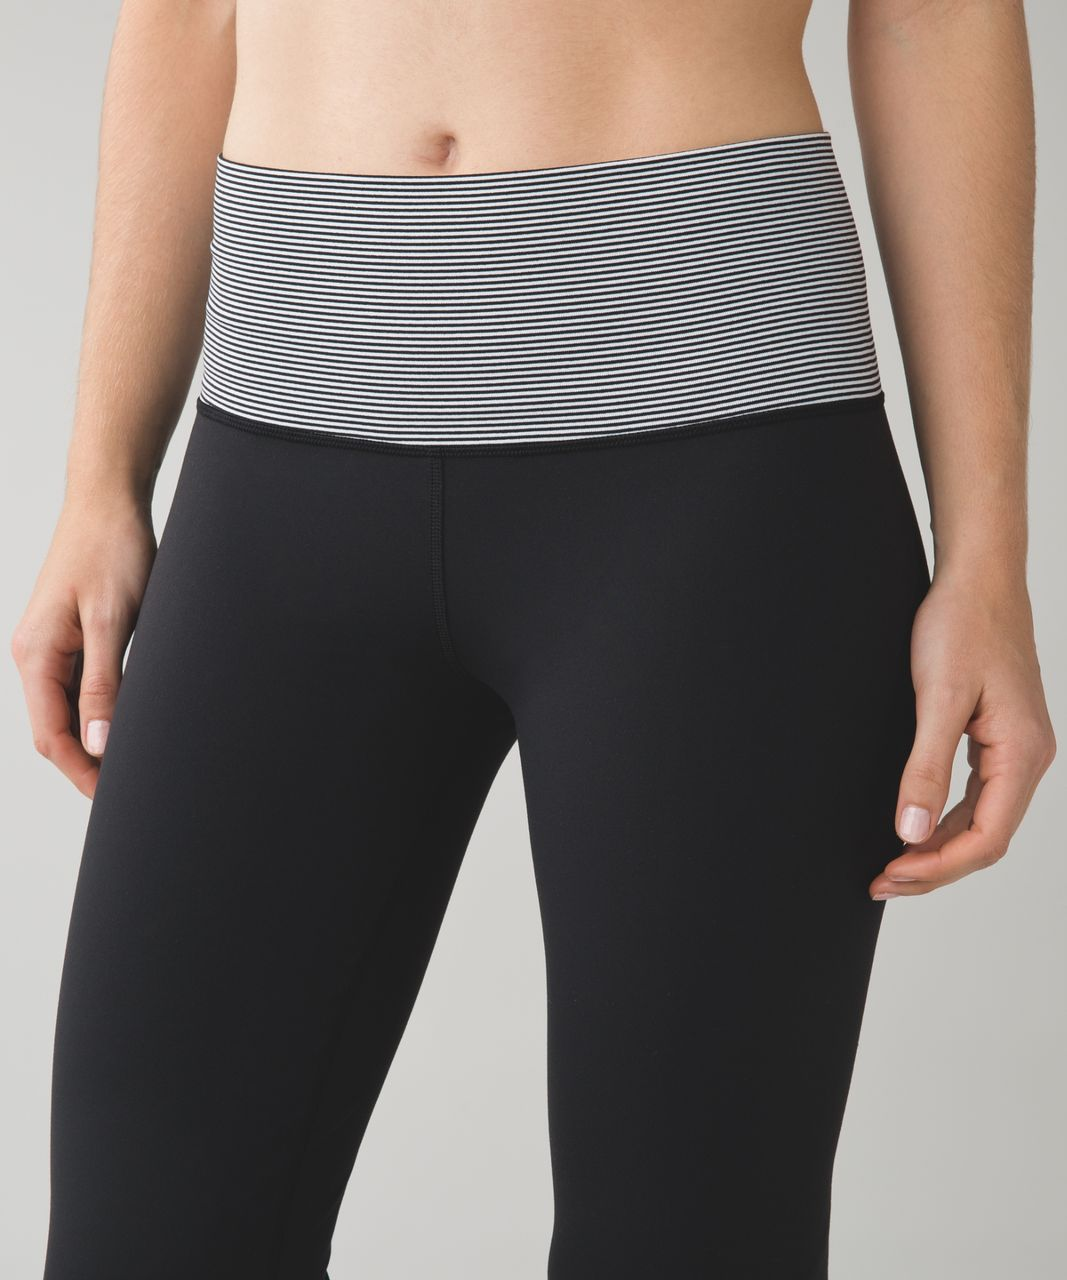 Lululemon Groove Pant III (Regular) *Full-On Luon - Black / Tonka Stripe Black White